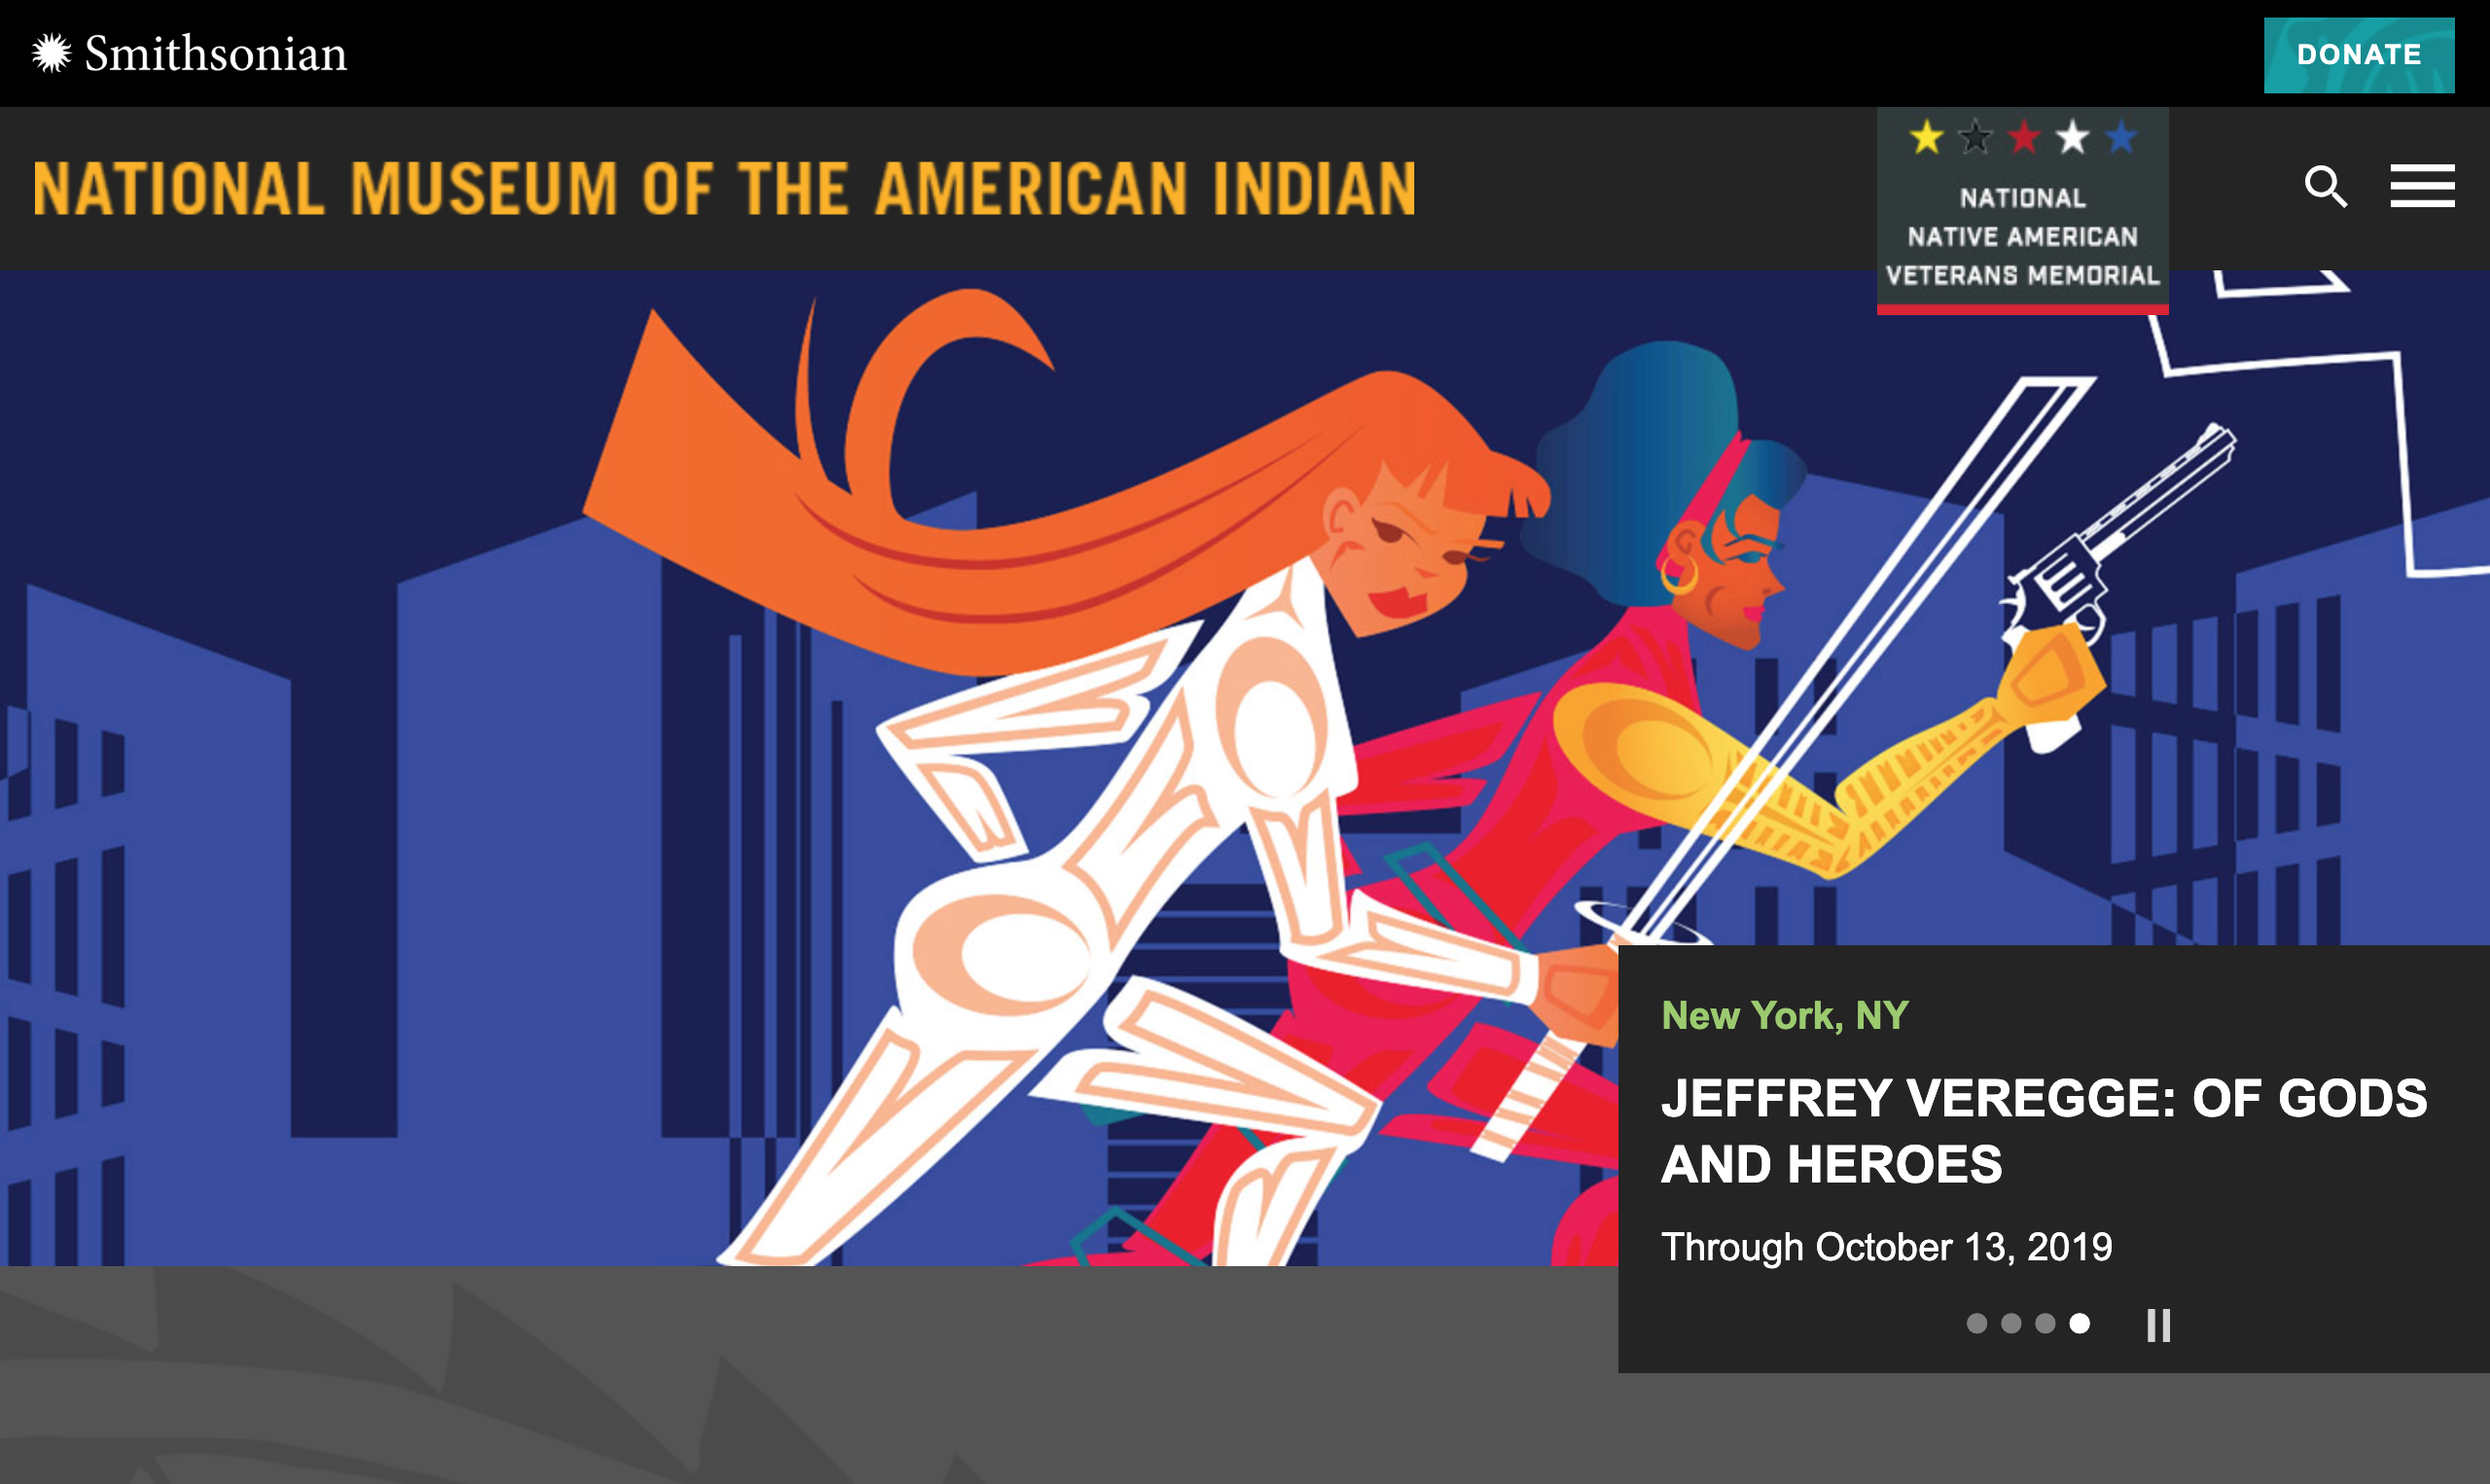 National Museum of the American Indian website